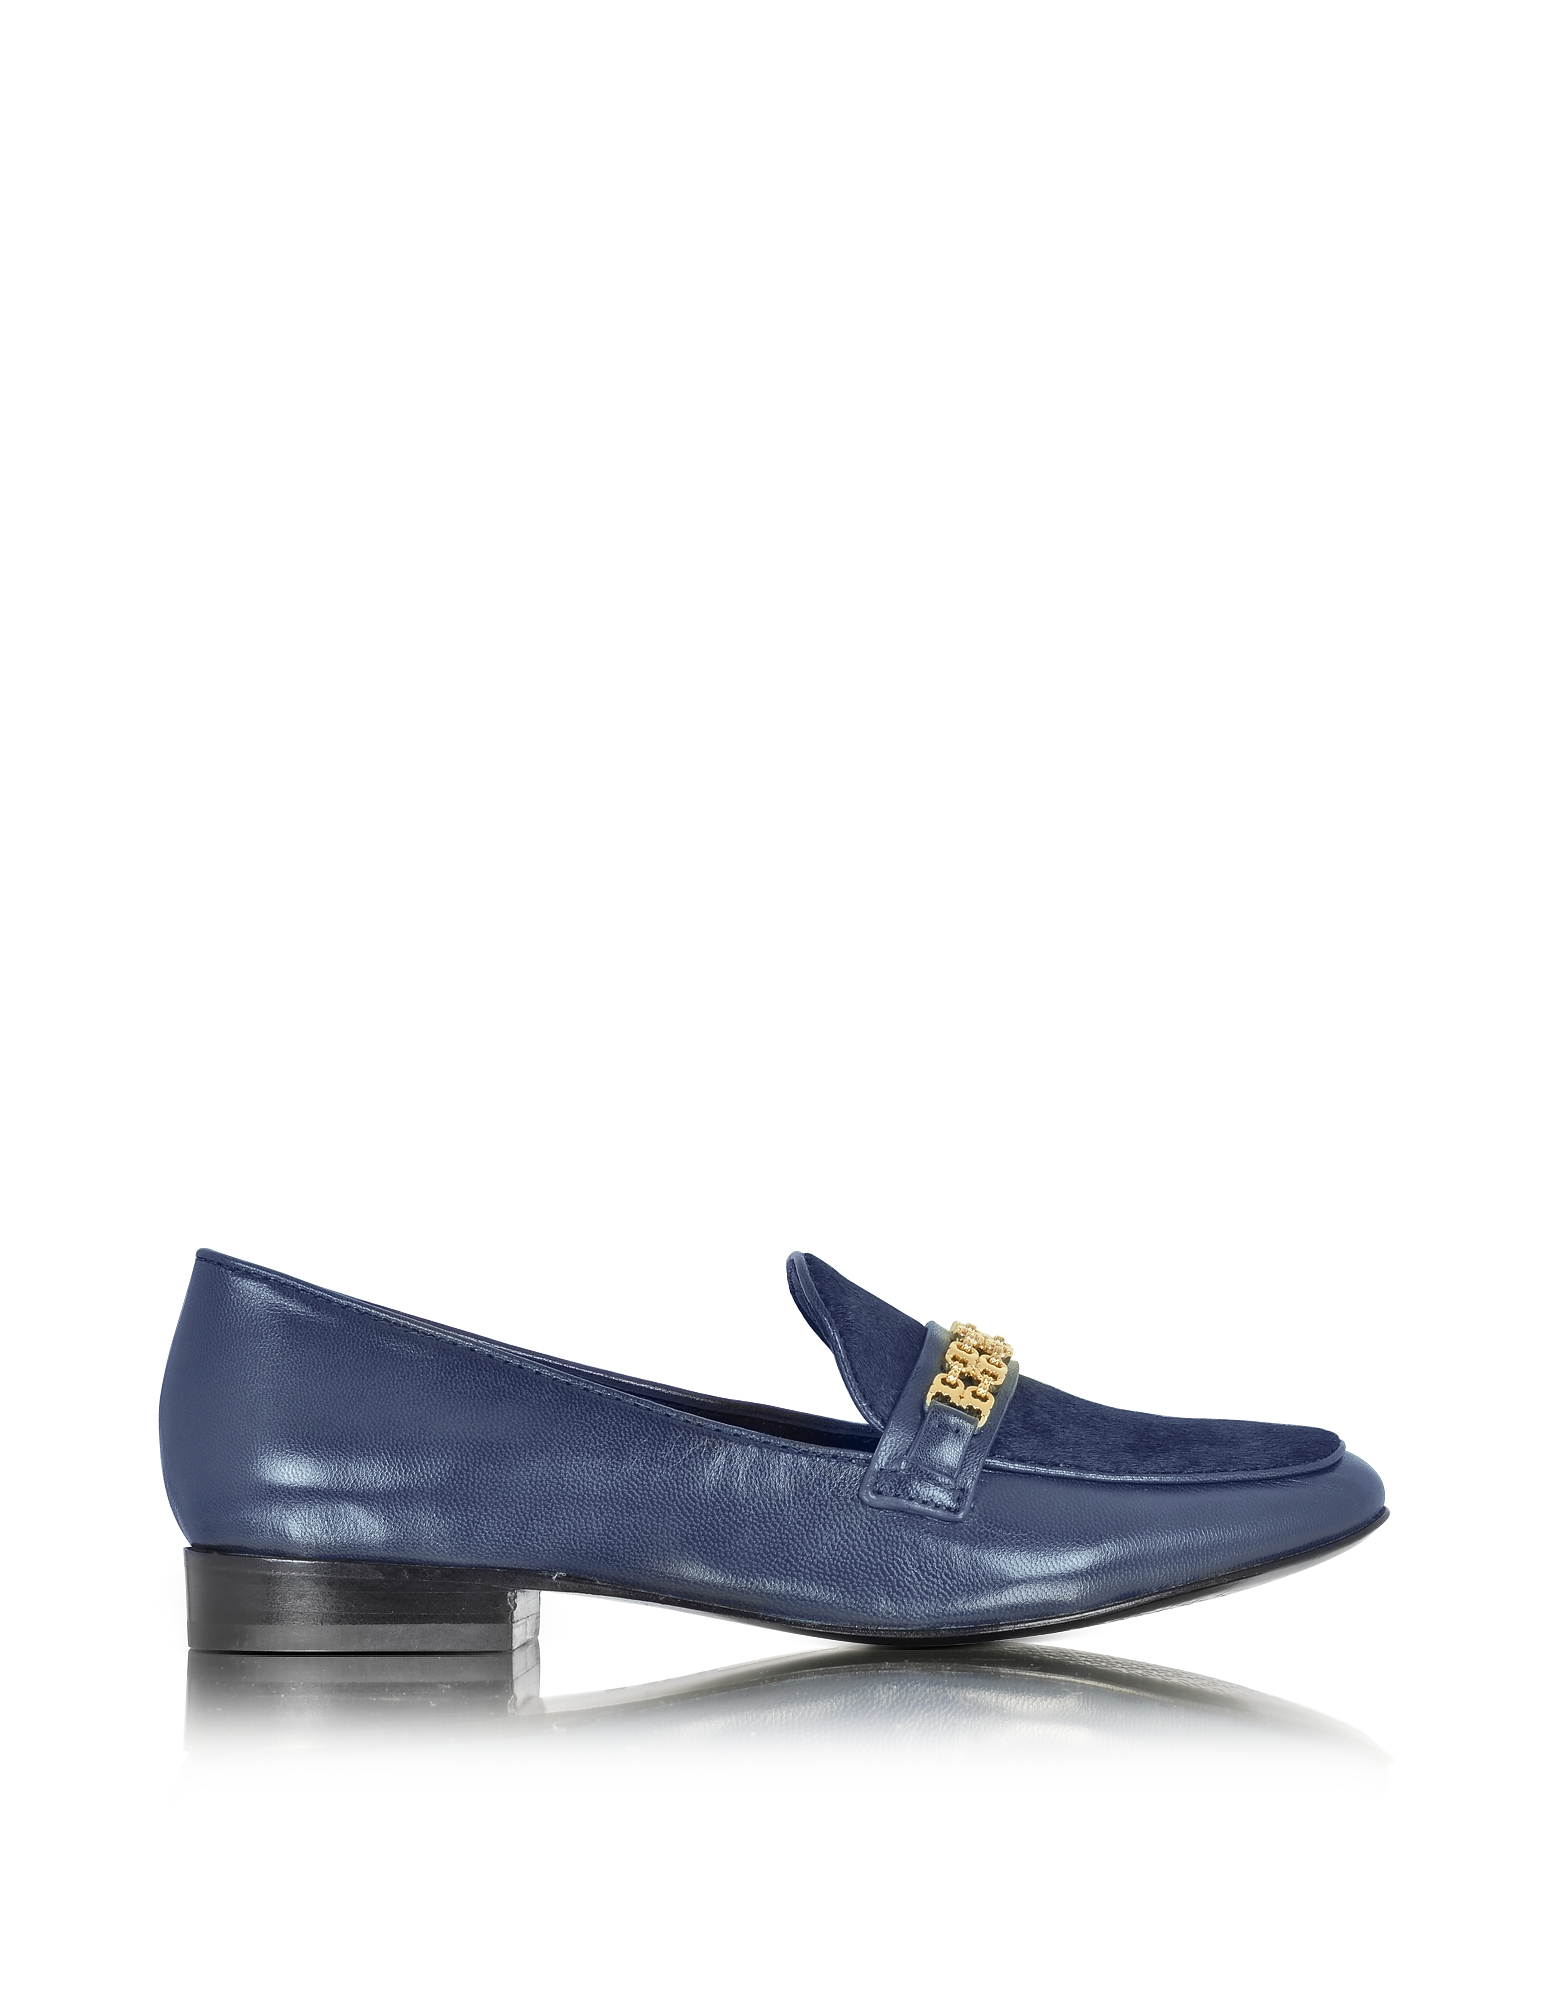 Tory Burch Shoes, Gemini Link Royal Navy Leather and Haircalf Loafer